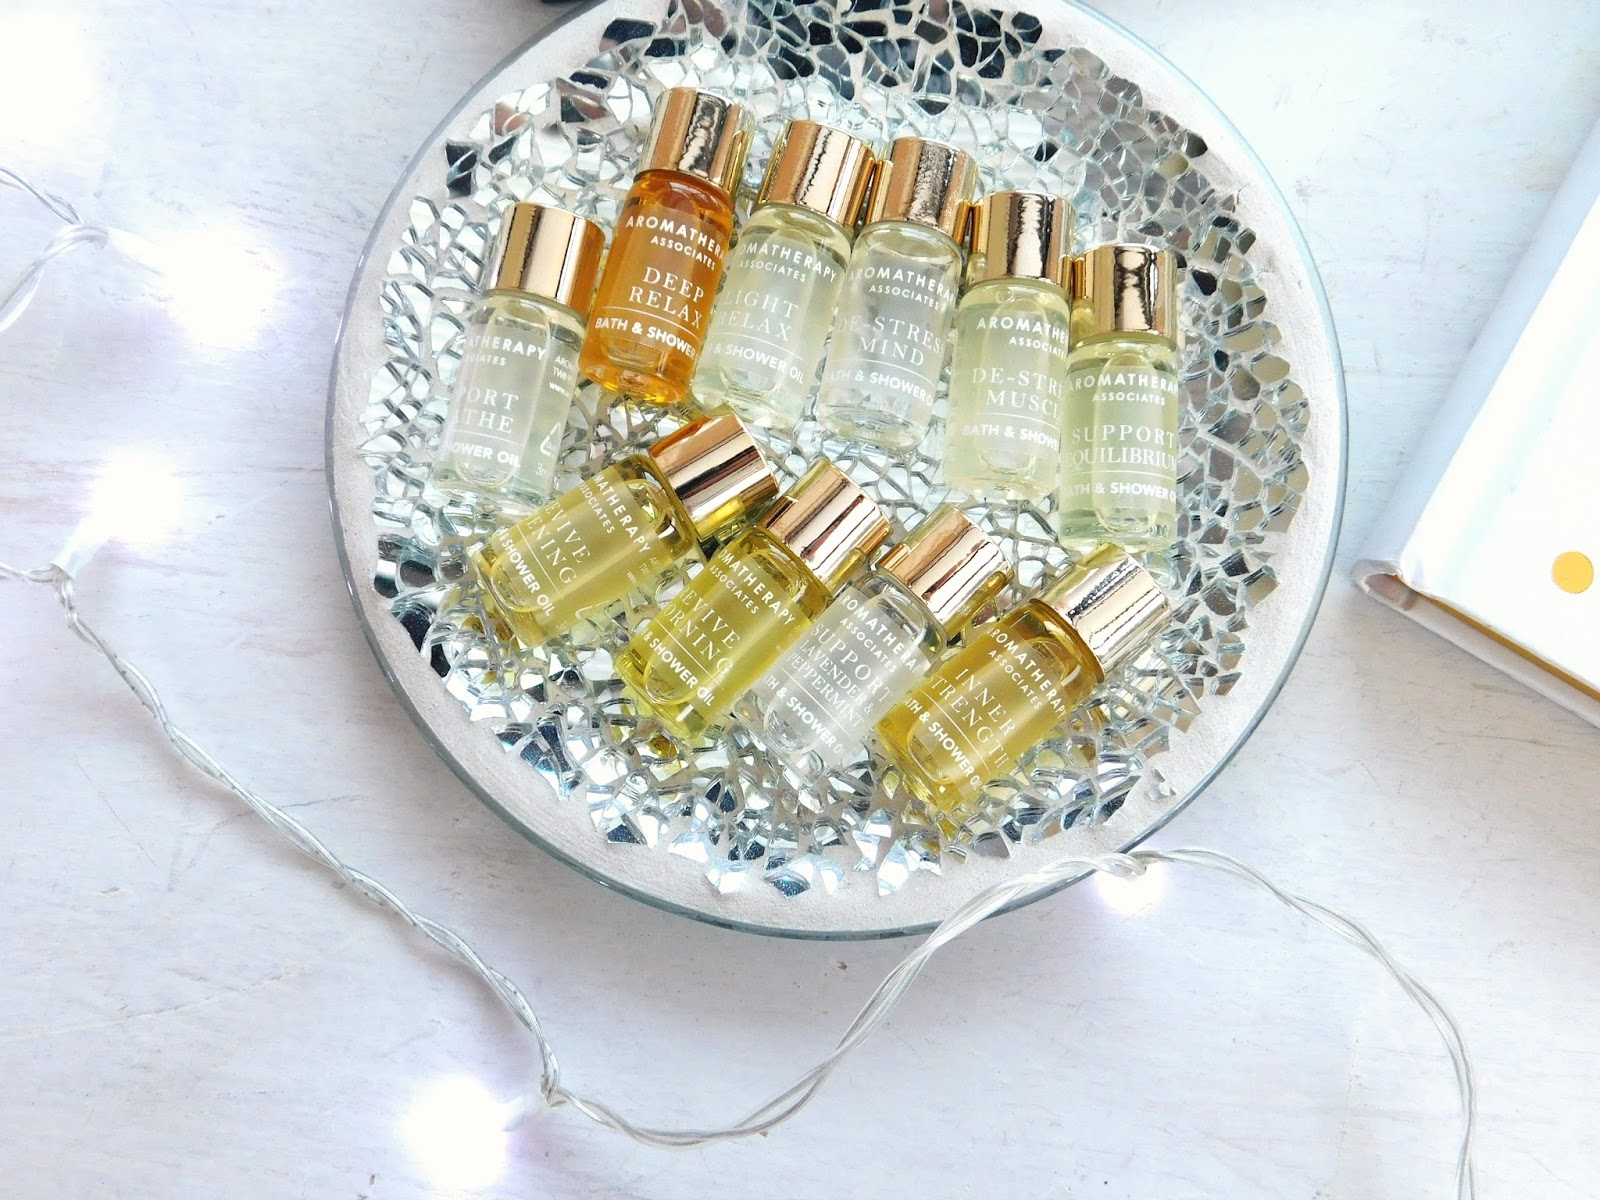 Aromatherapy Bath Oils, Pamper Evening, Beauty Products